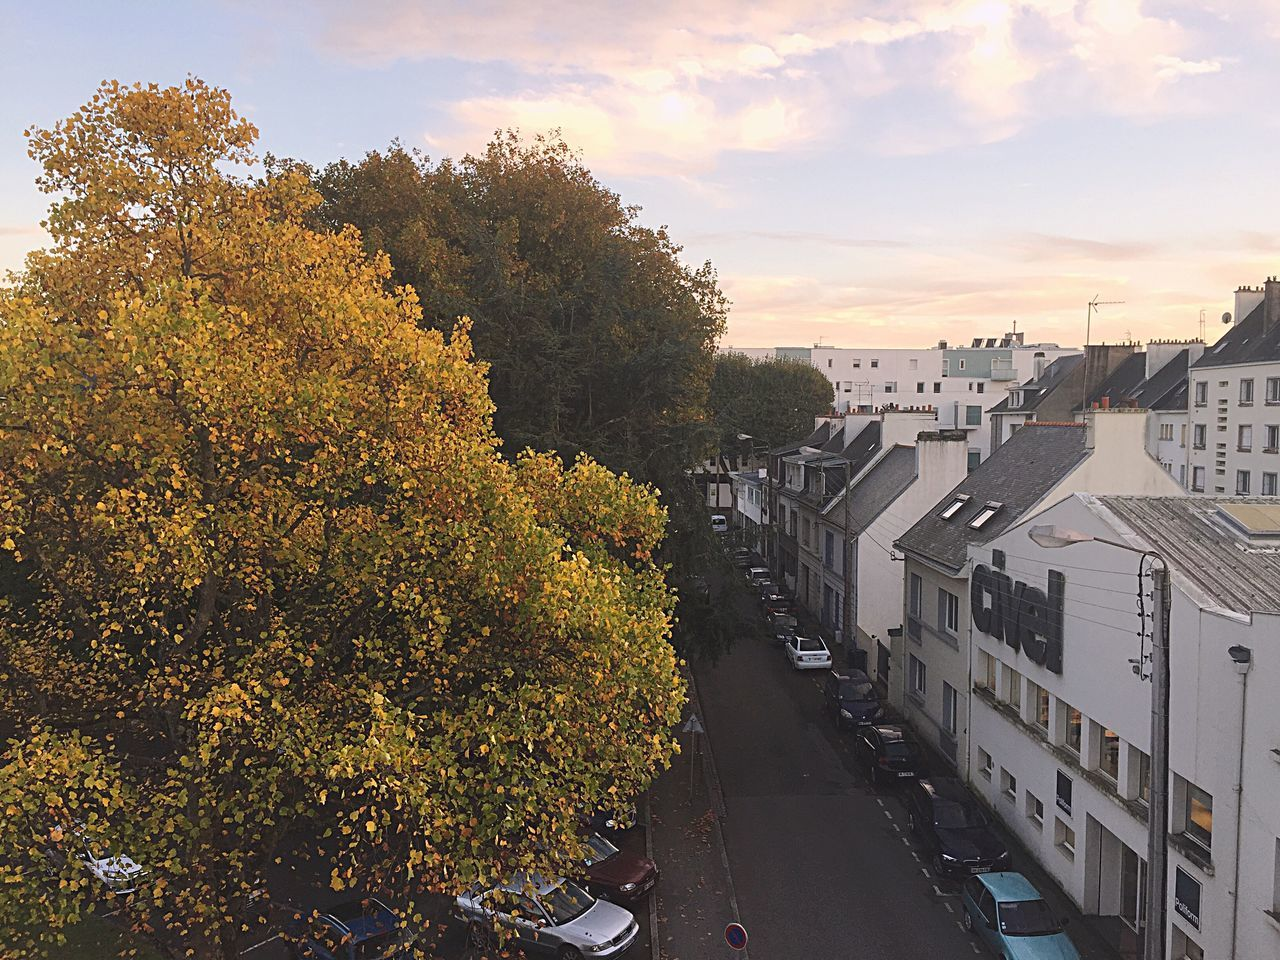 Tree Nature City Architecture Sky Autumn Yellow Cars Lorient First Eyeem Photo